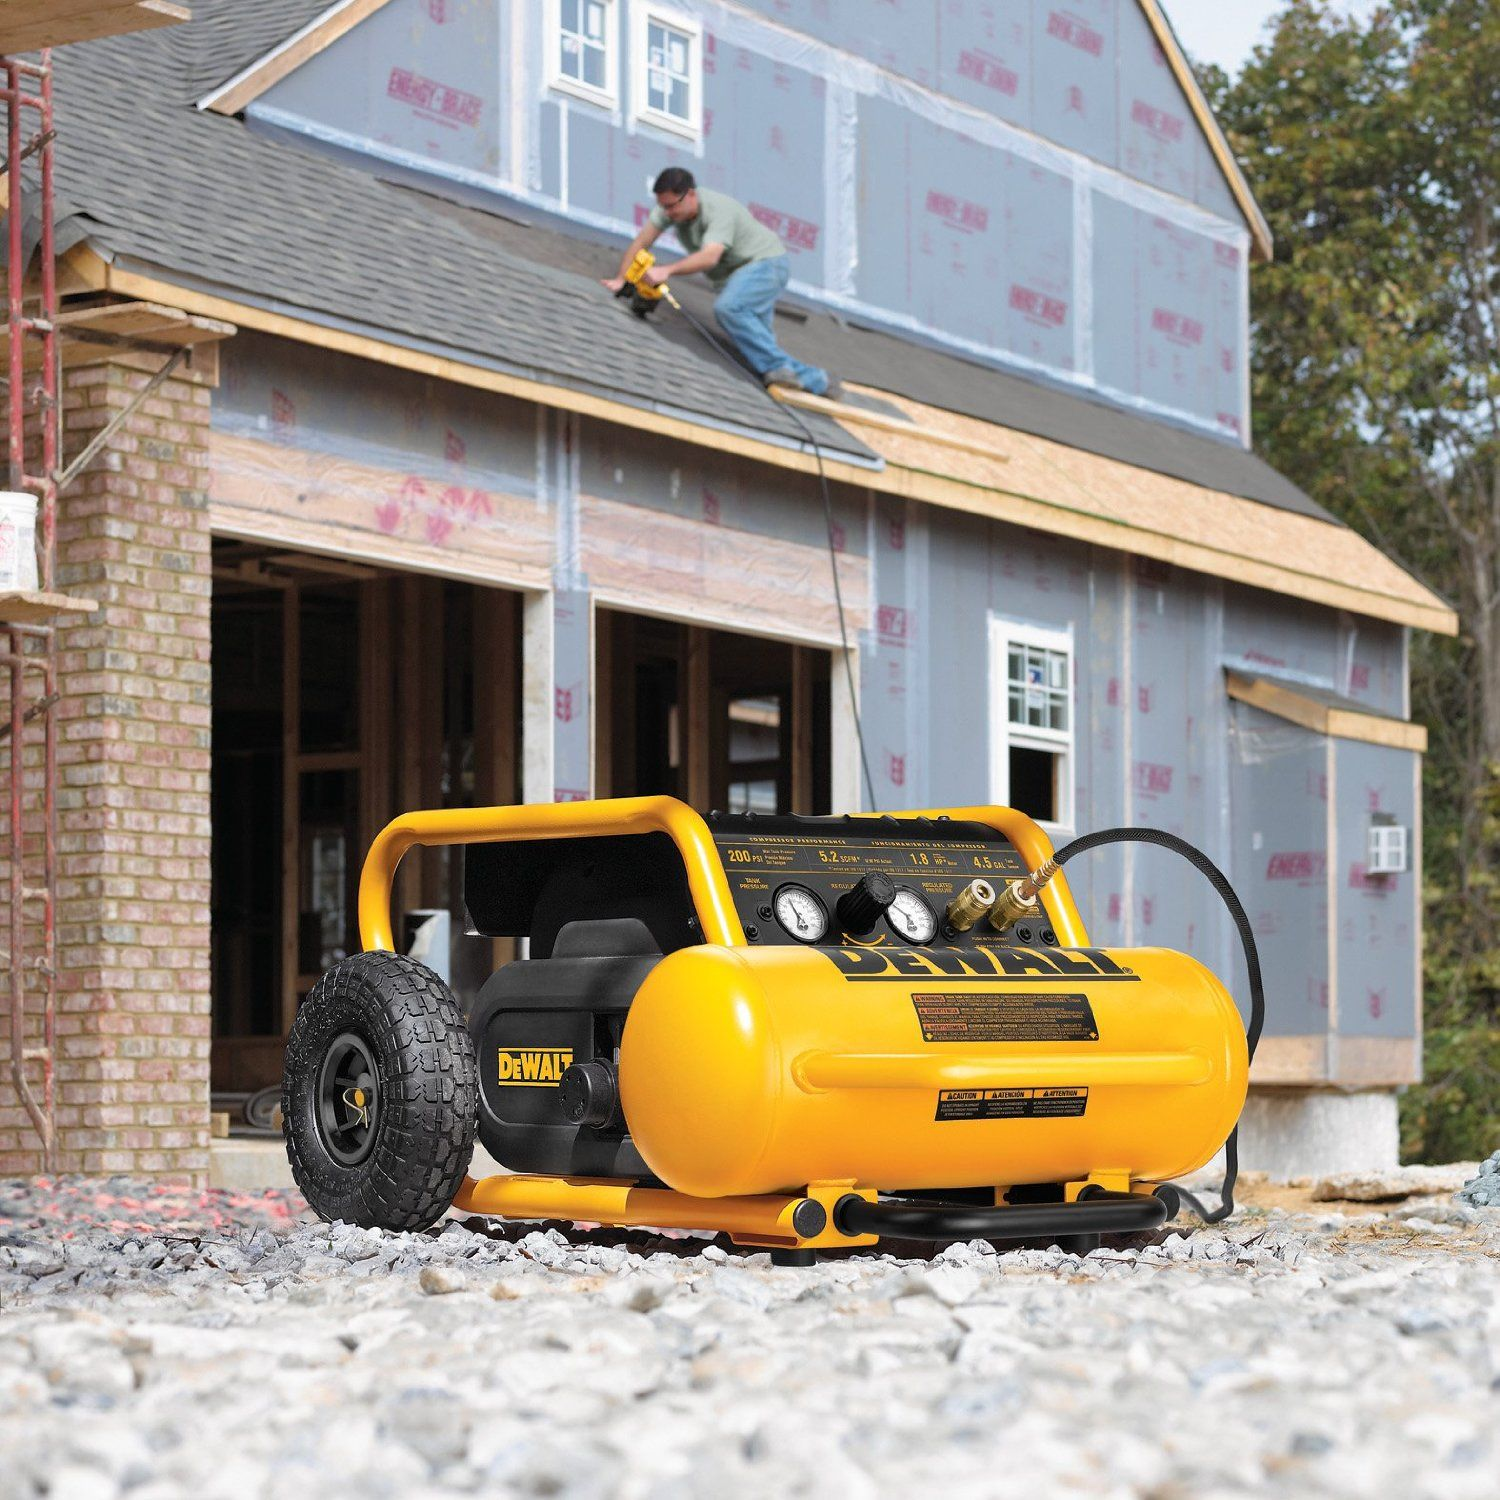 Shopping for an air compressor for home renovations or DIY